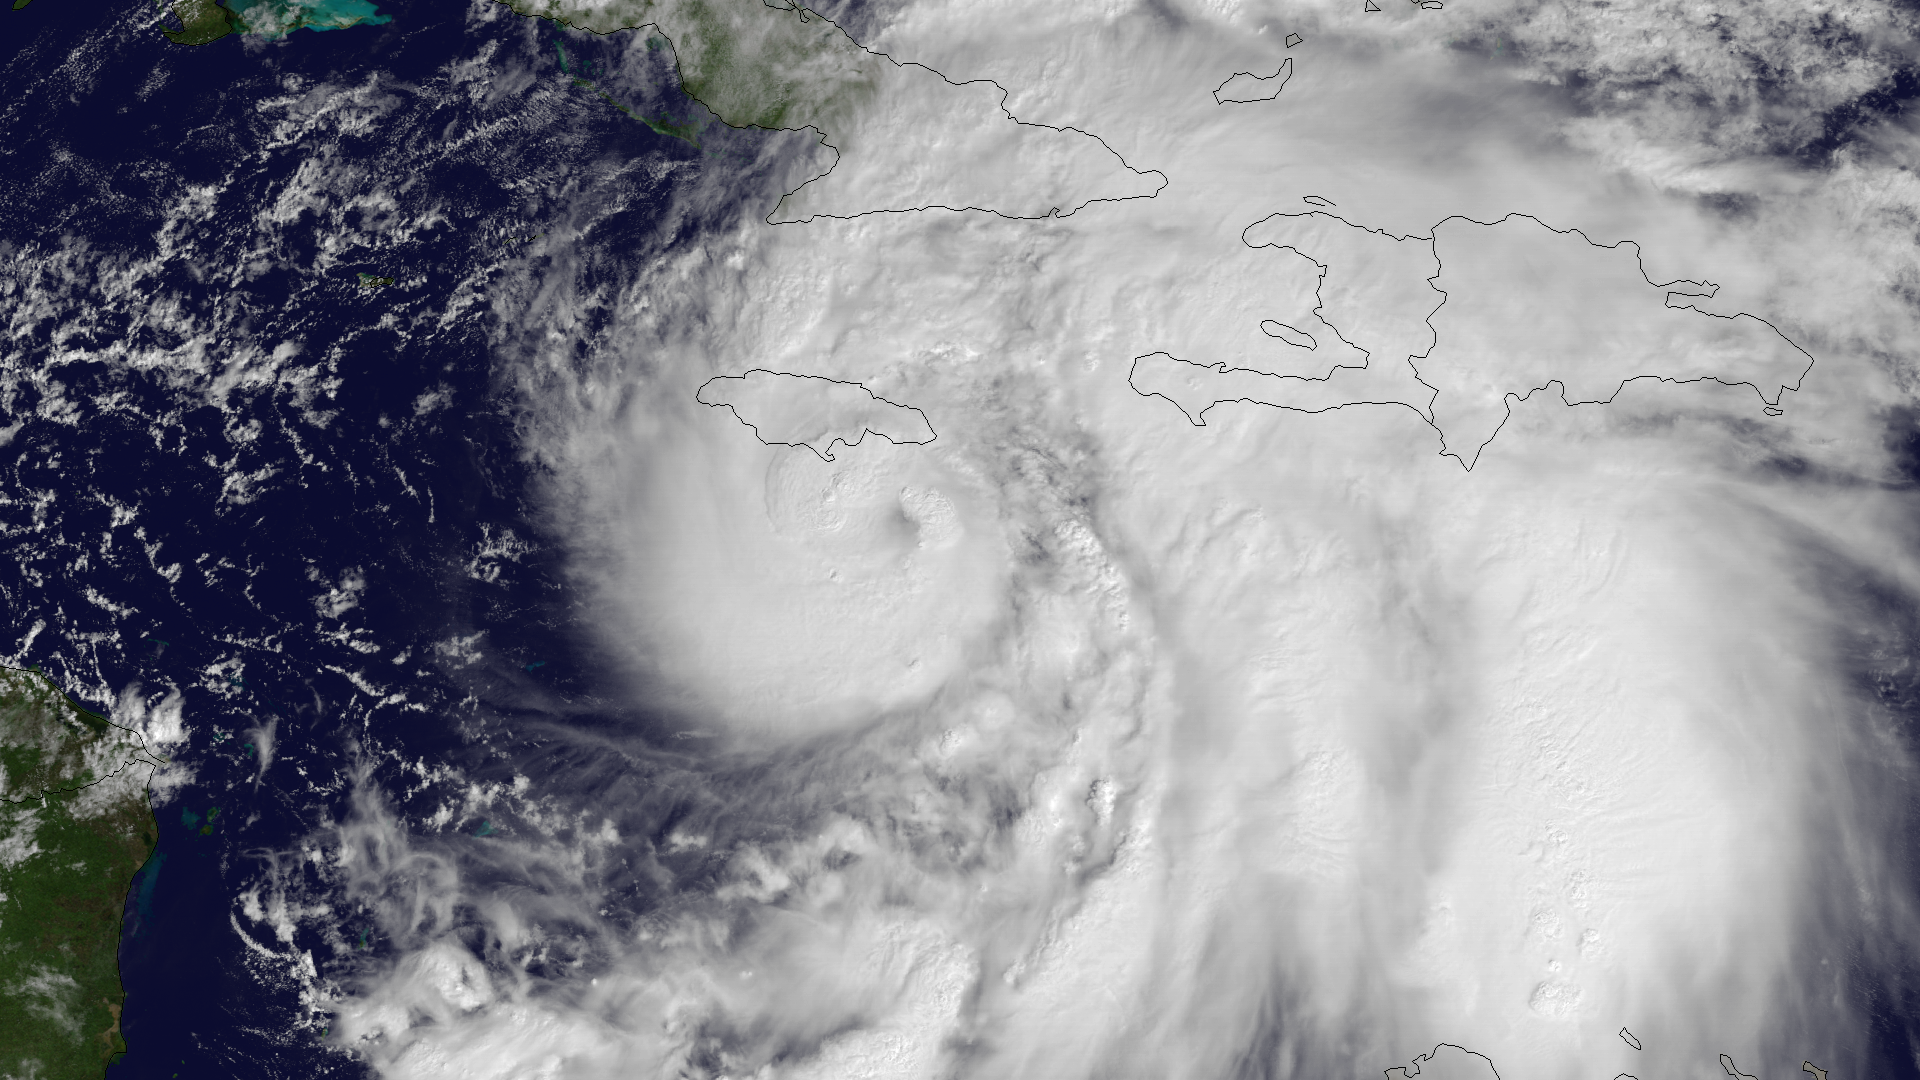 http://upload.wikimedia.org/wikipedia/commons/0/02/Hurricane_Sandy_GOES-13_Oct_24_2012_1445z.png